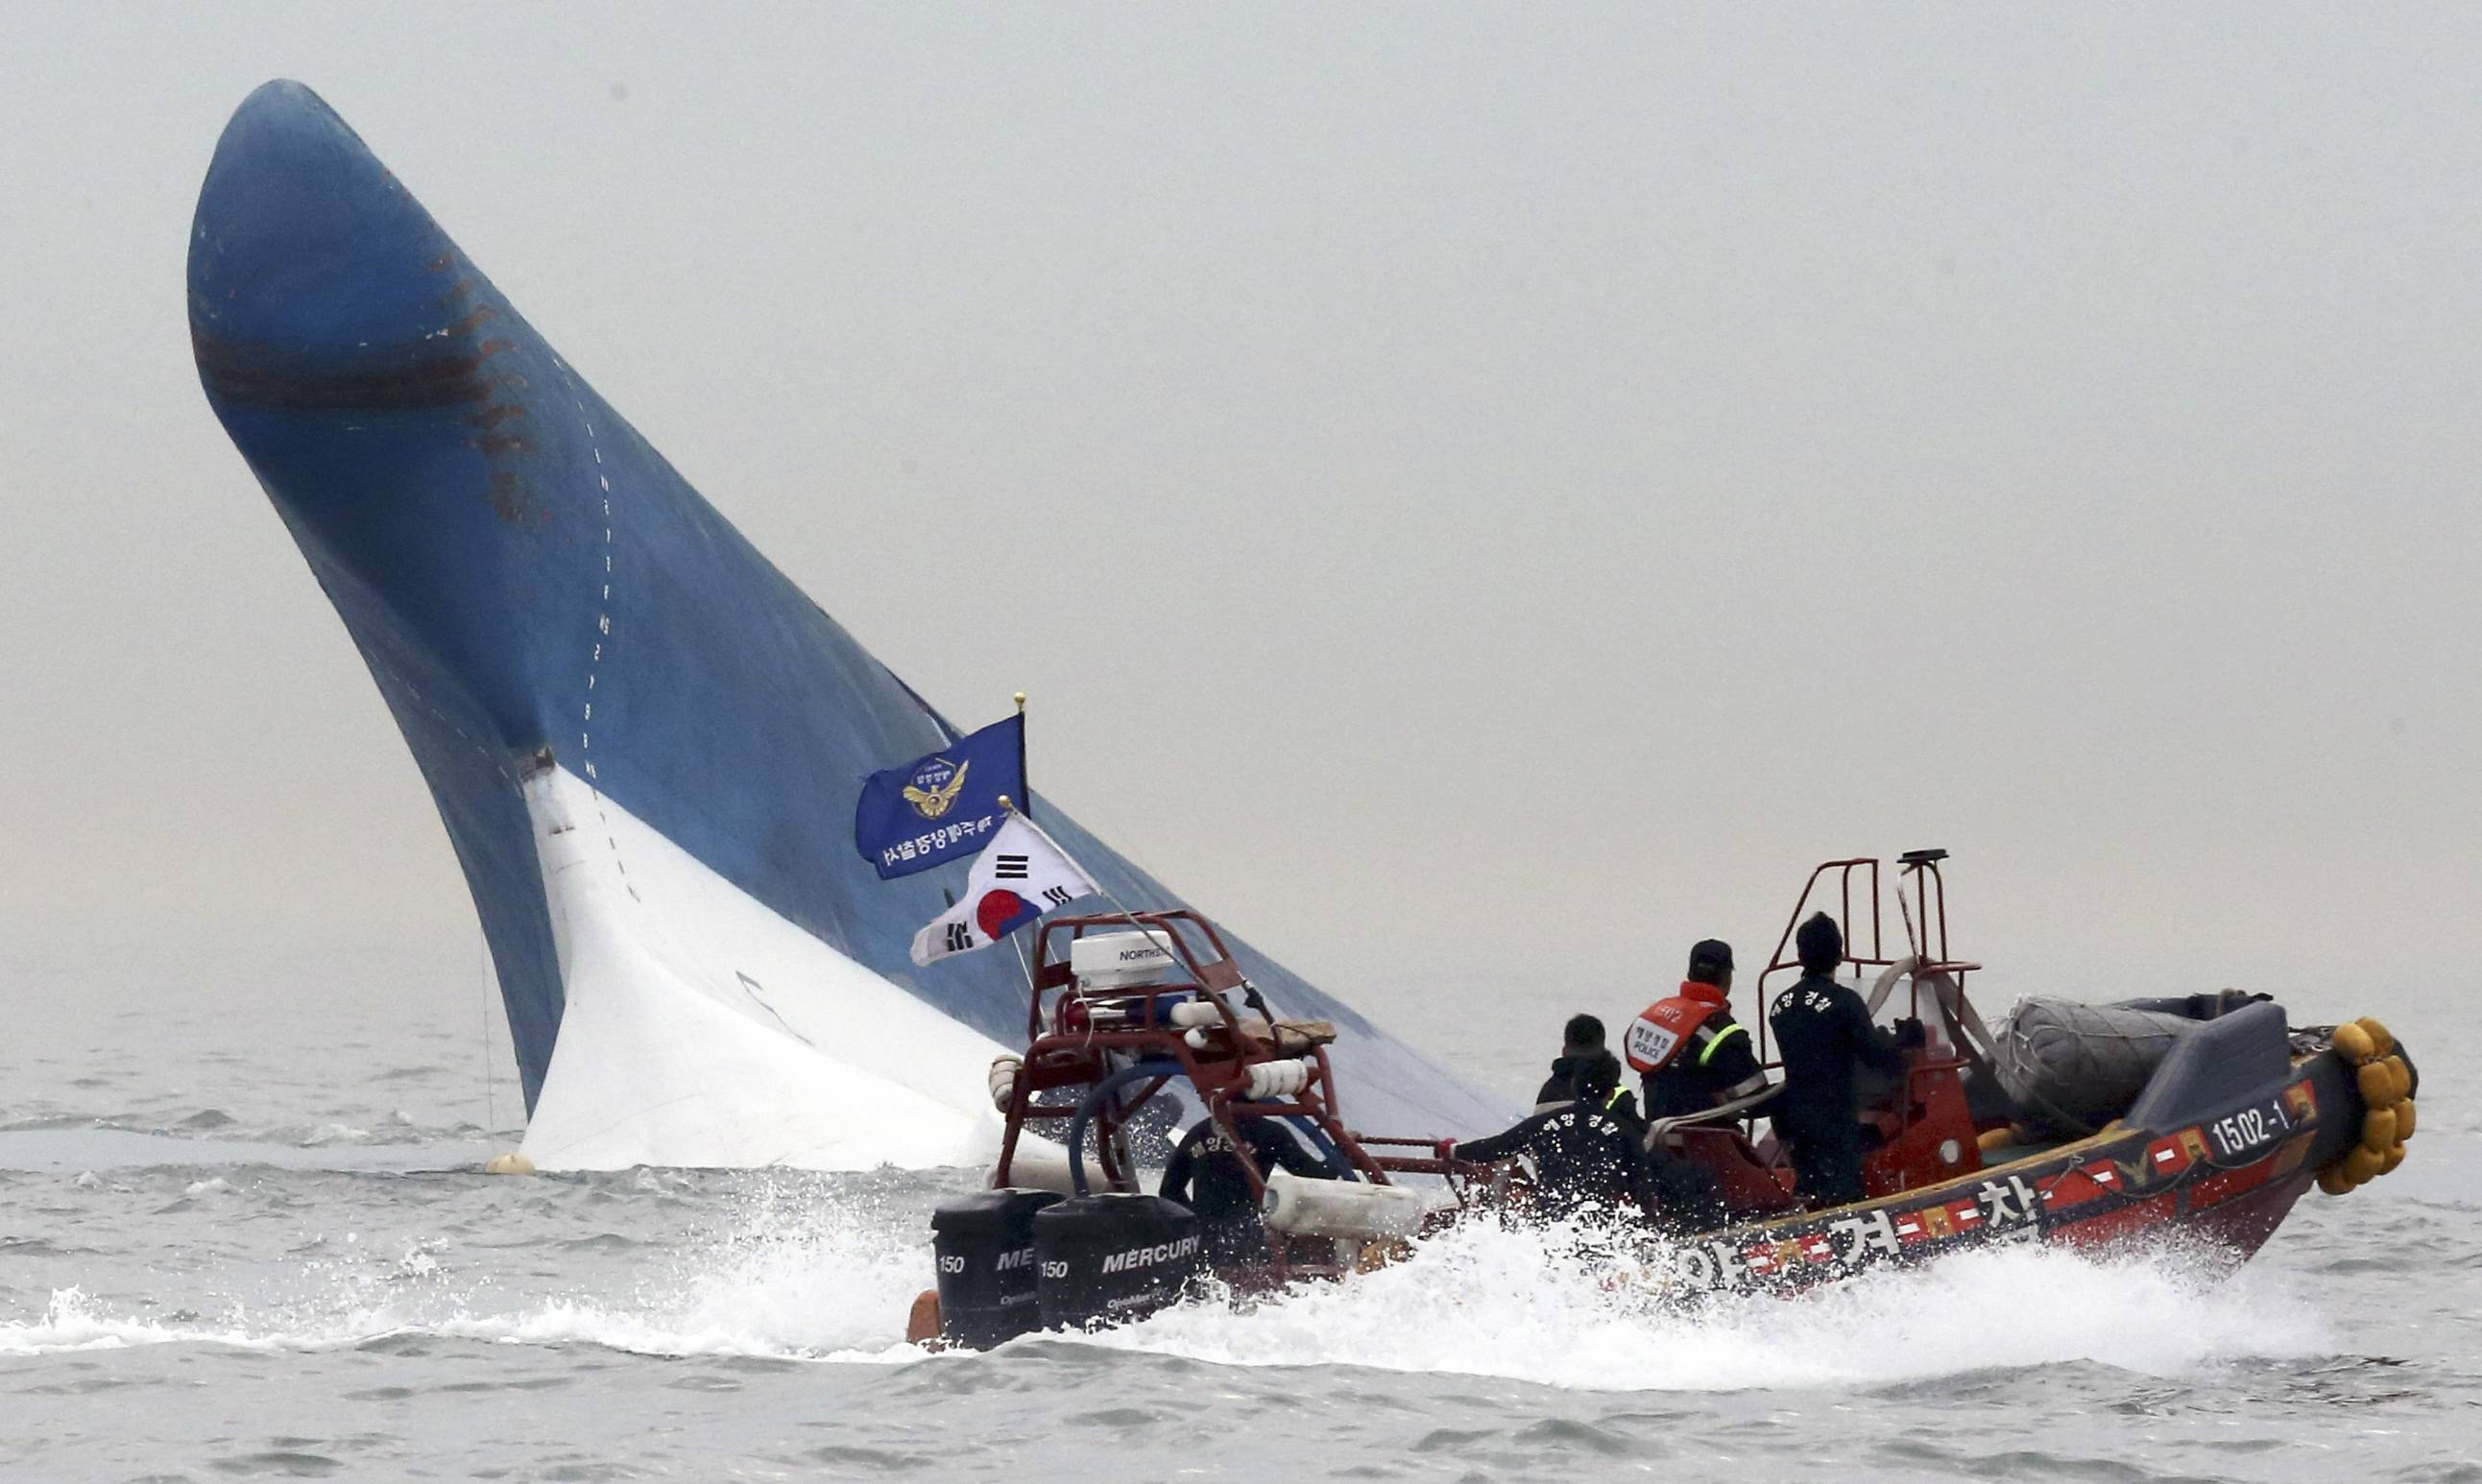 South Korean coast guard officers try to rescue passengers from a ferry sinking in the water off the southern coast near Jindo, south of Seoul, South Korea, Wednesday, April 16, 2014. The ferry carrying 459 people, mostly high school students on an overnight trip to a tourist island, sank off South Korea's southern coast on Wednesday, leaving nearly 300 people missing despite a frantic, hourslong rescue by dozens of ships and helicopters. At least four people were confirmed dead and 55 injured.